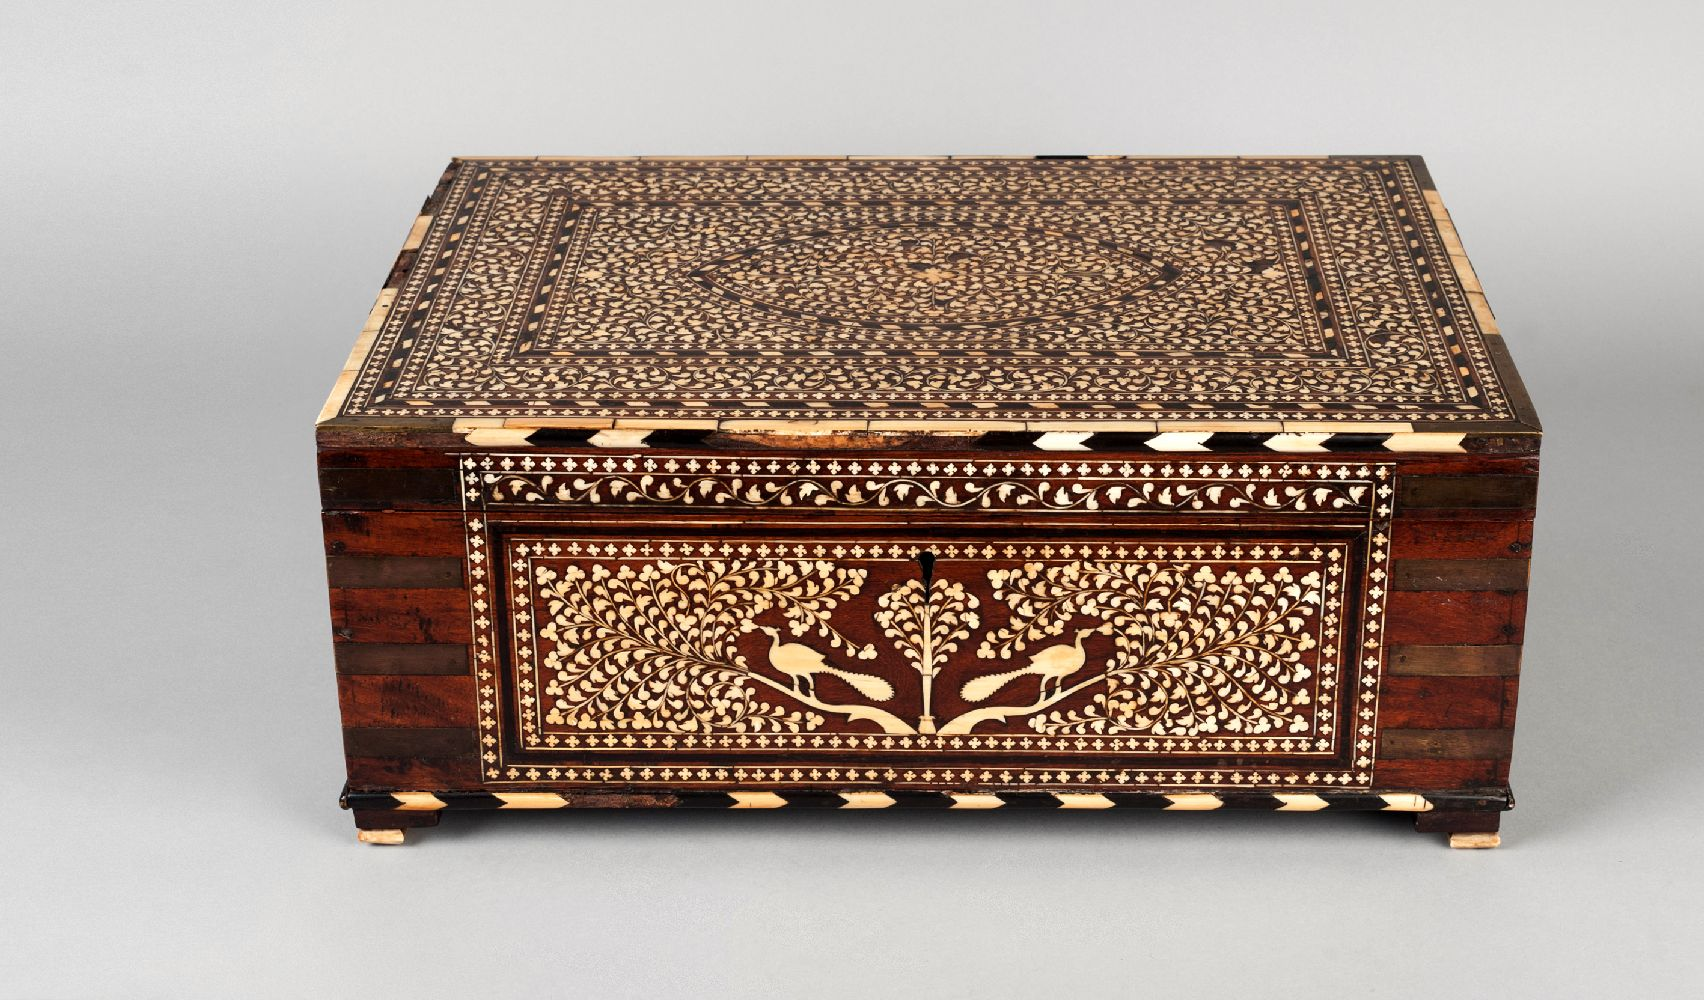 A large Horshiapur ivory inlaid chest, India, 19th century, of rectangular form, with hinged lid,